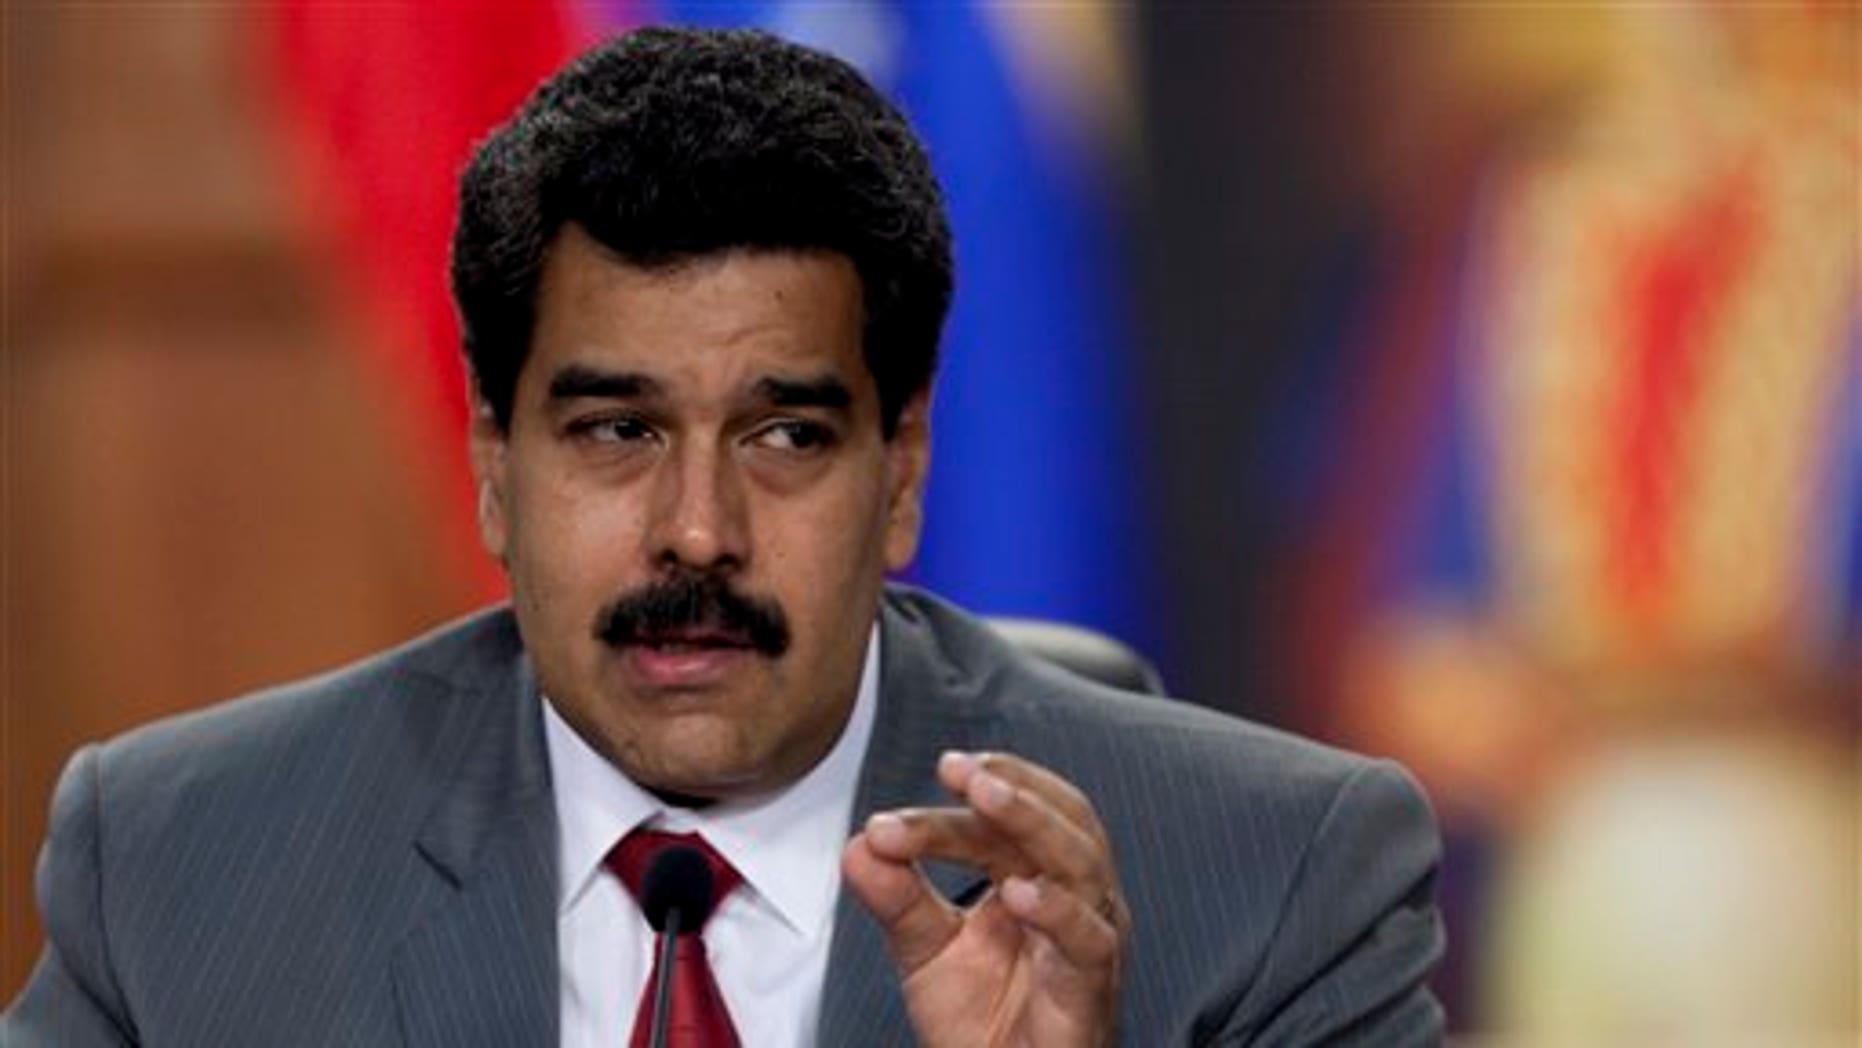 Venezuela's President Nicolás Maduro speaks during a press conference at the Miraflores presidential palace in Caracas, Venezuela, Friday, March 14, 2014.